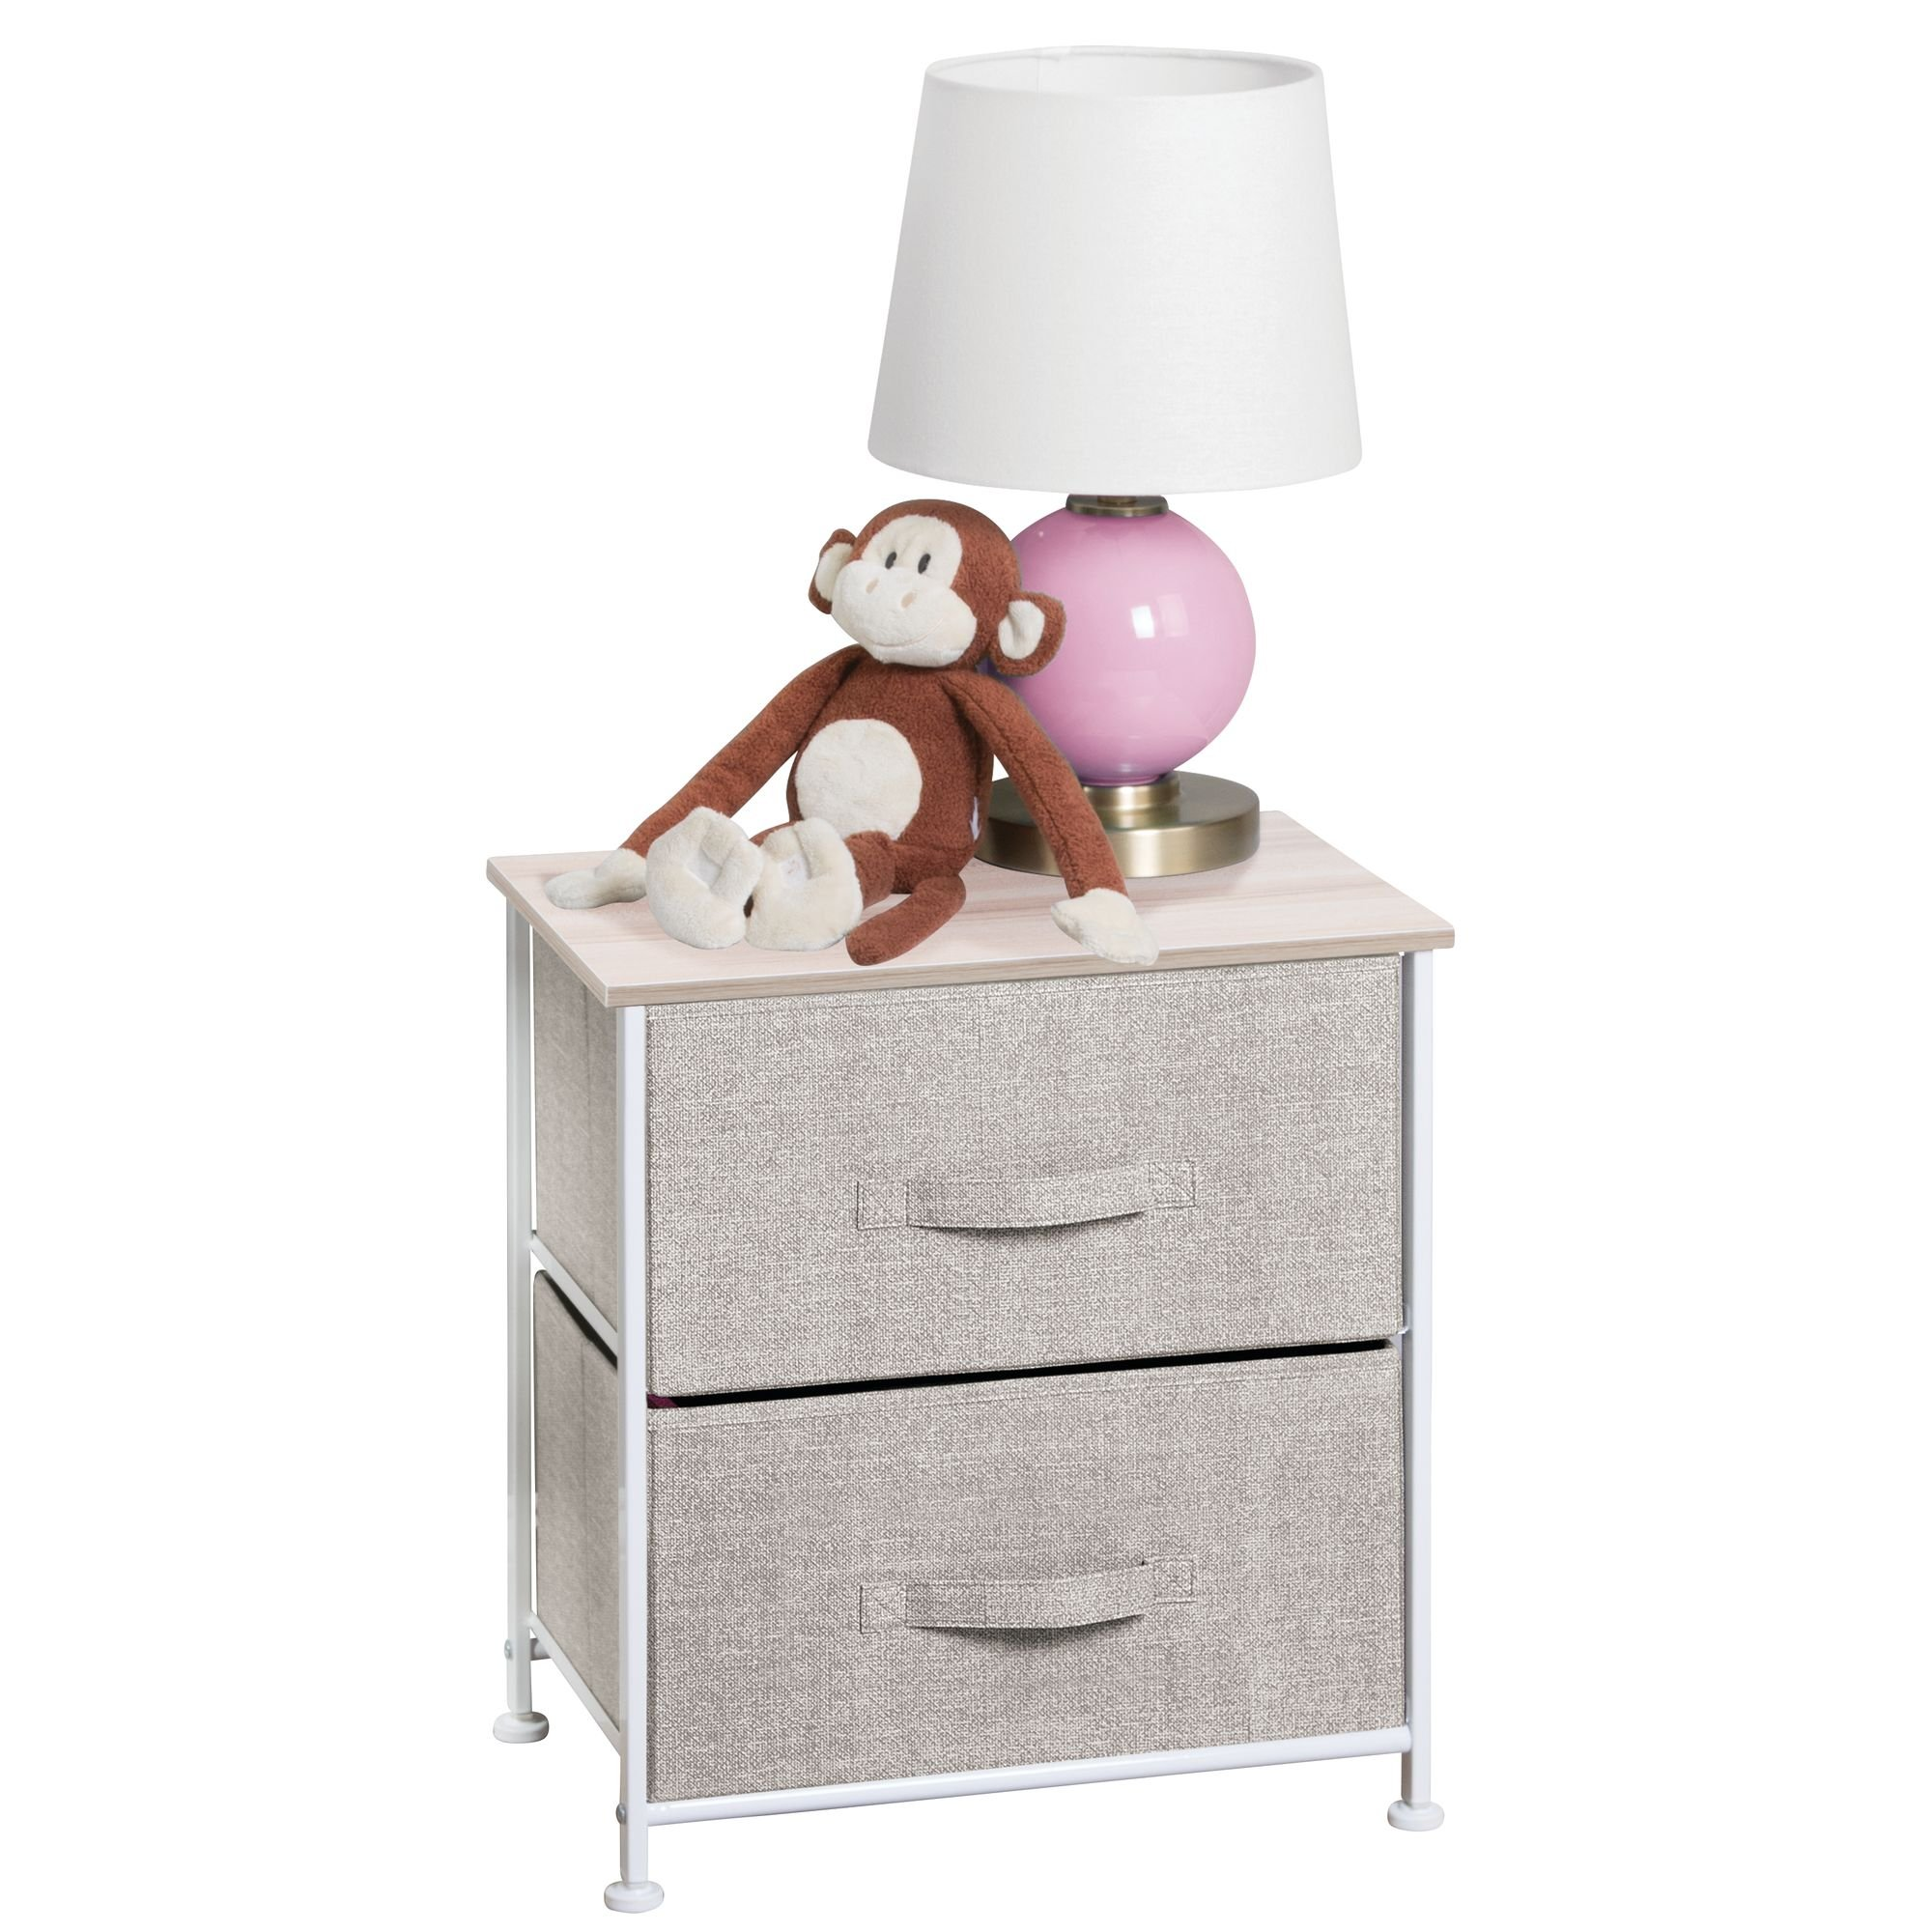 mDesign Fabric Baby 2-Drawer Dresser and Storage Organizer Unit for Nursery, Bedroom, Play Room - Linen